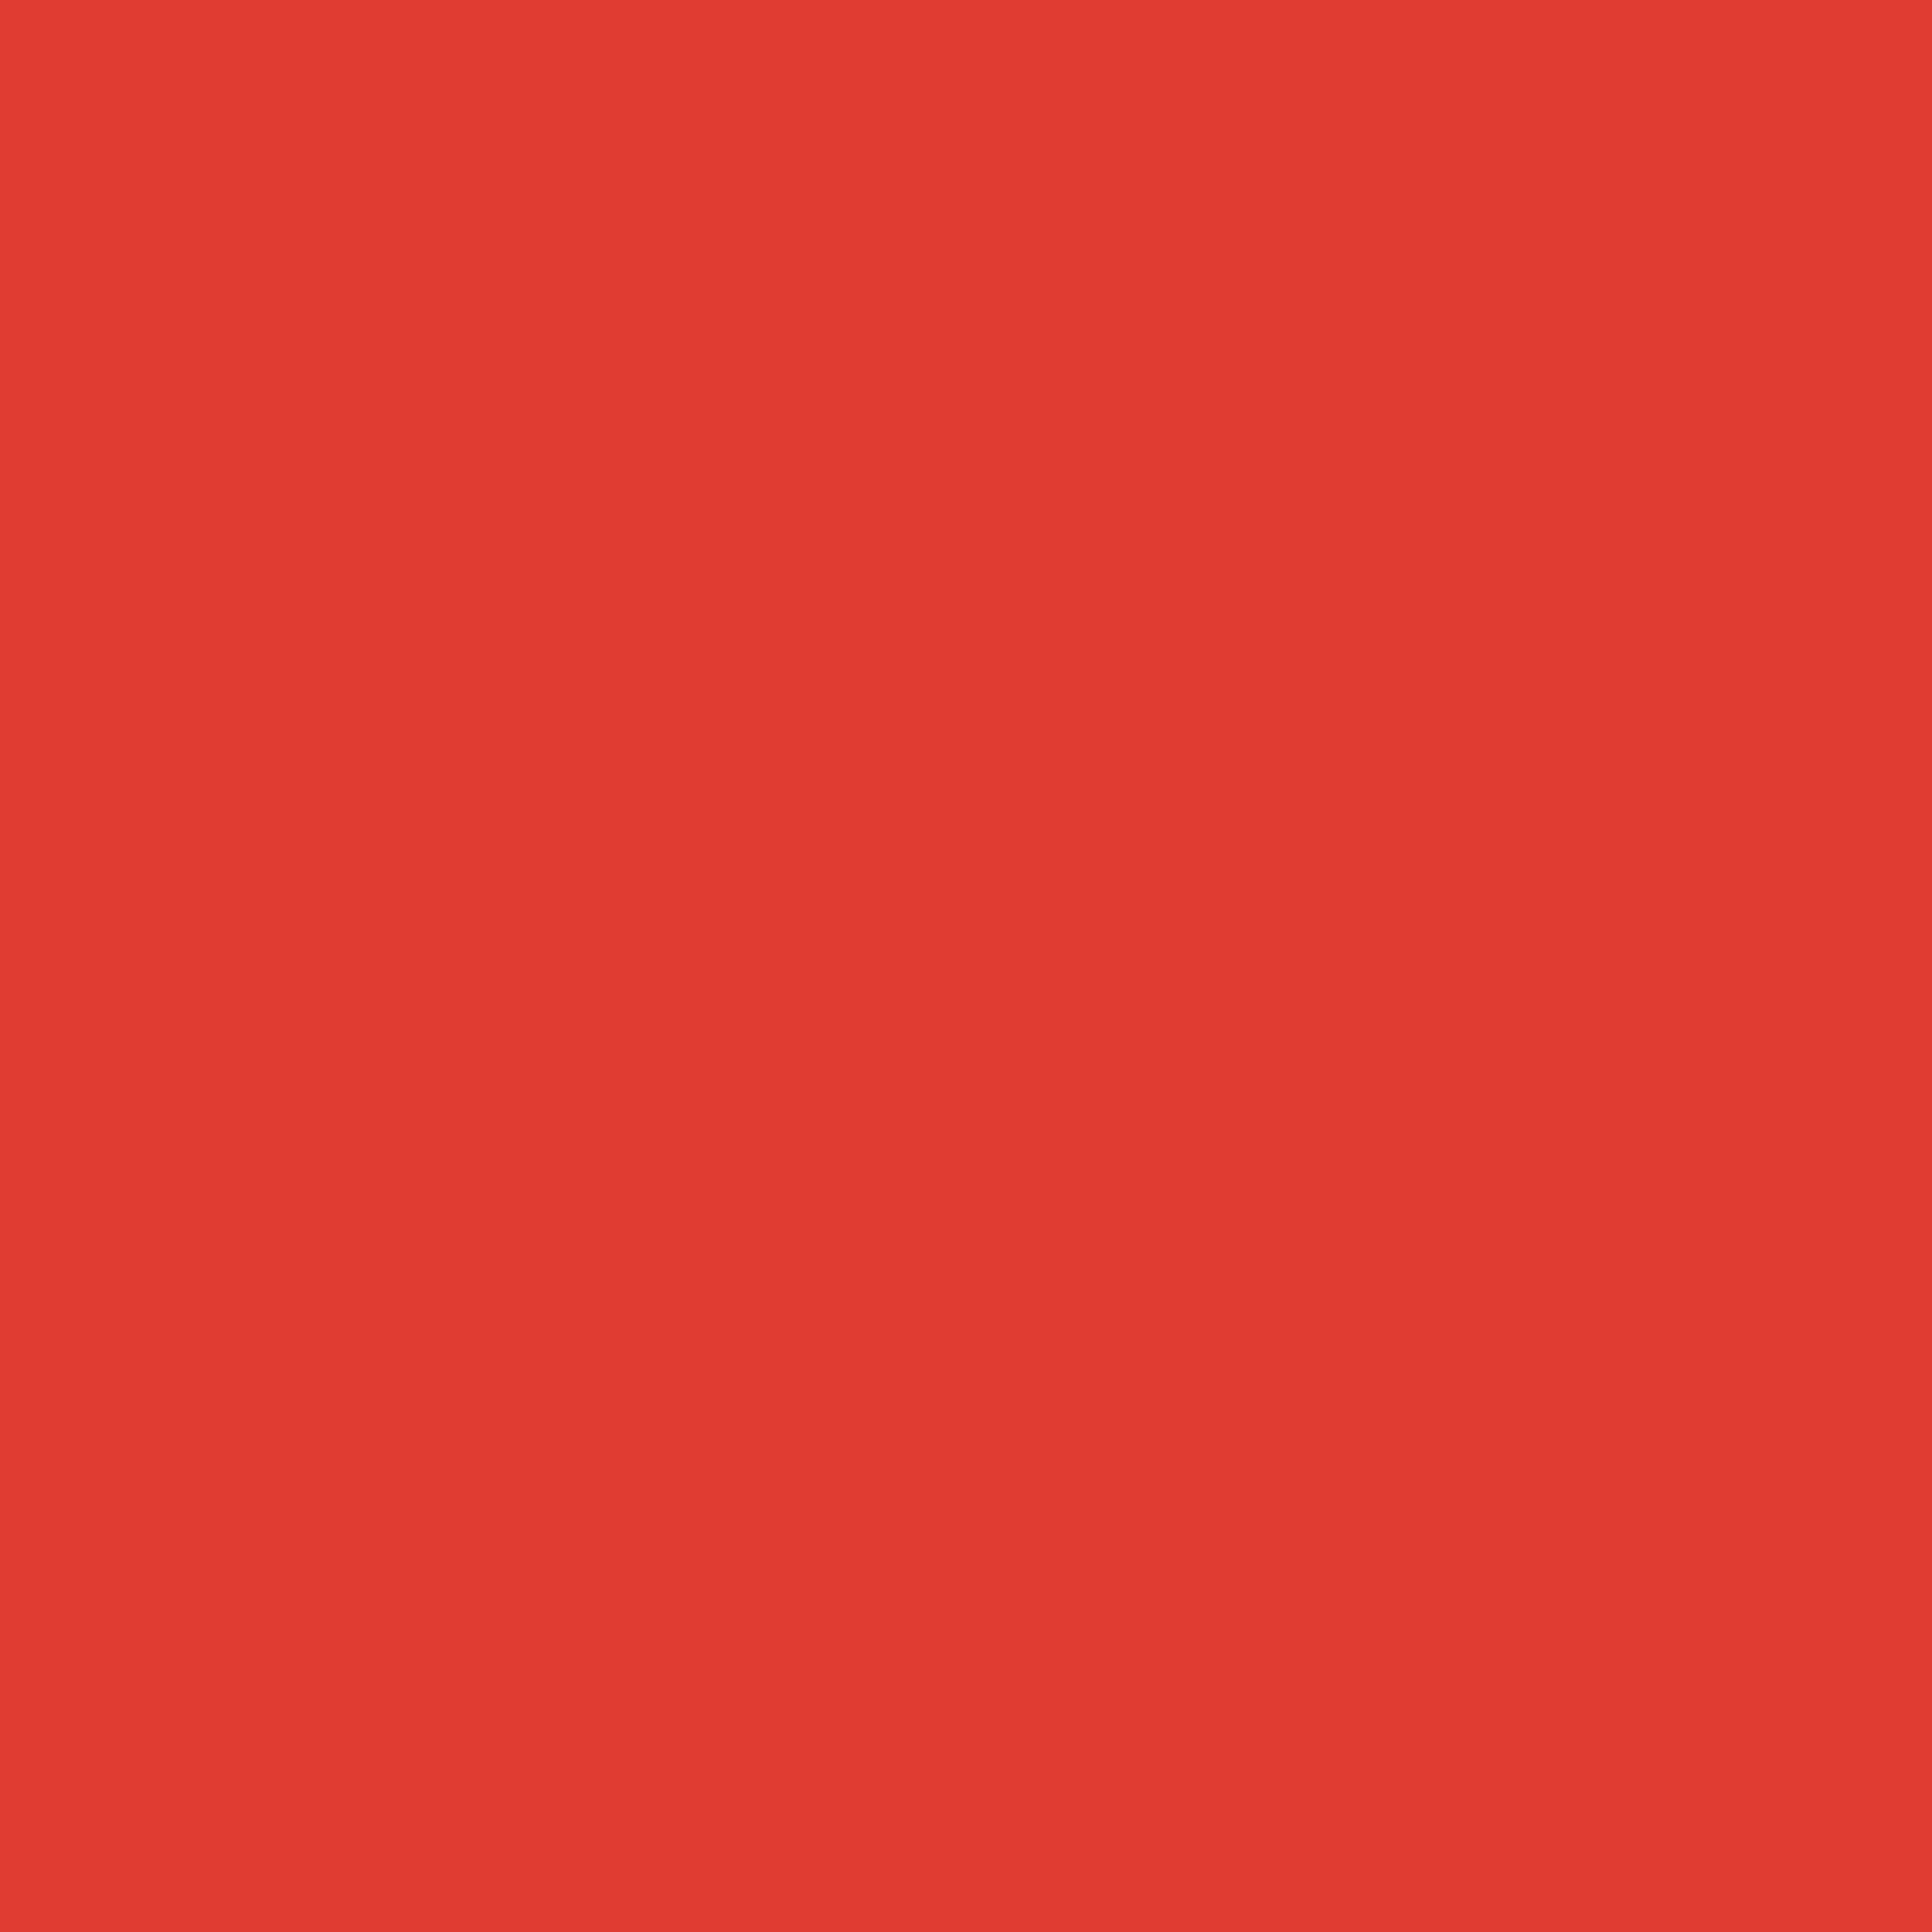 2048x2048 CG Red Solid Color Background